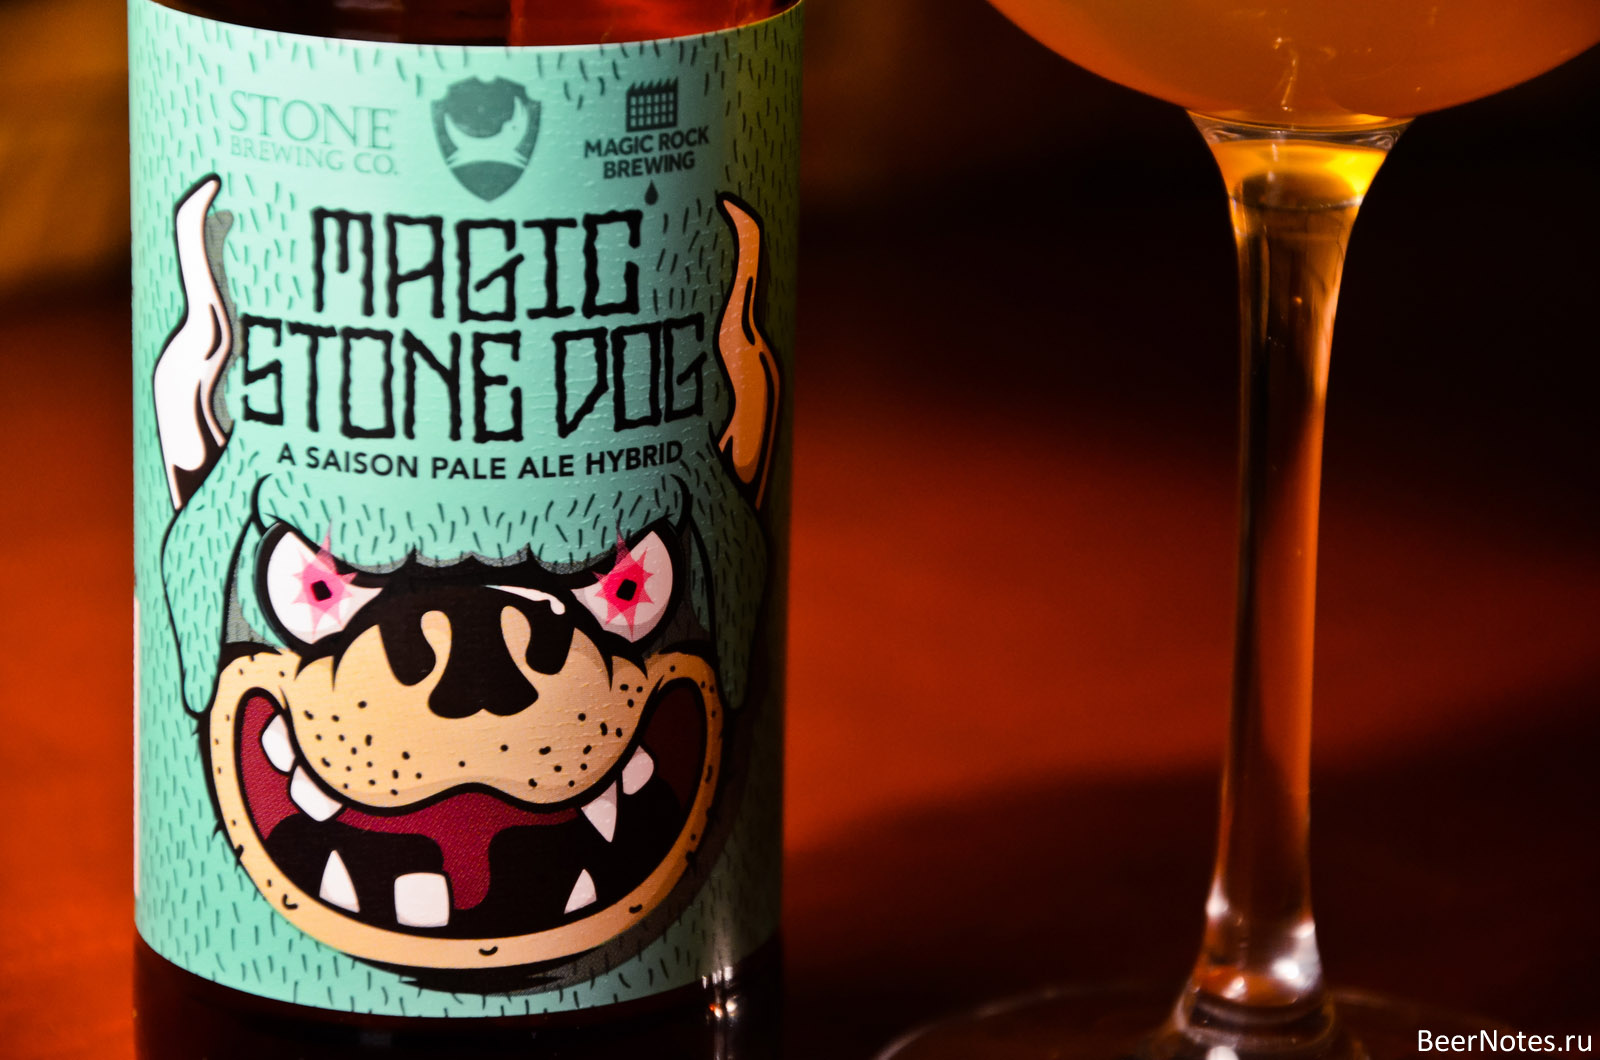 BrewDog Stone Magic Rock Magic Stone Dog3